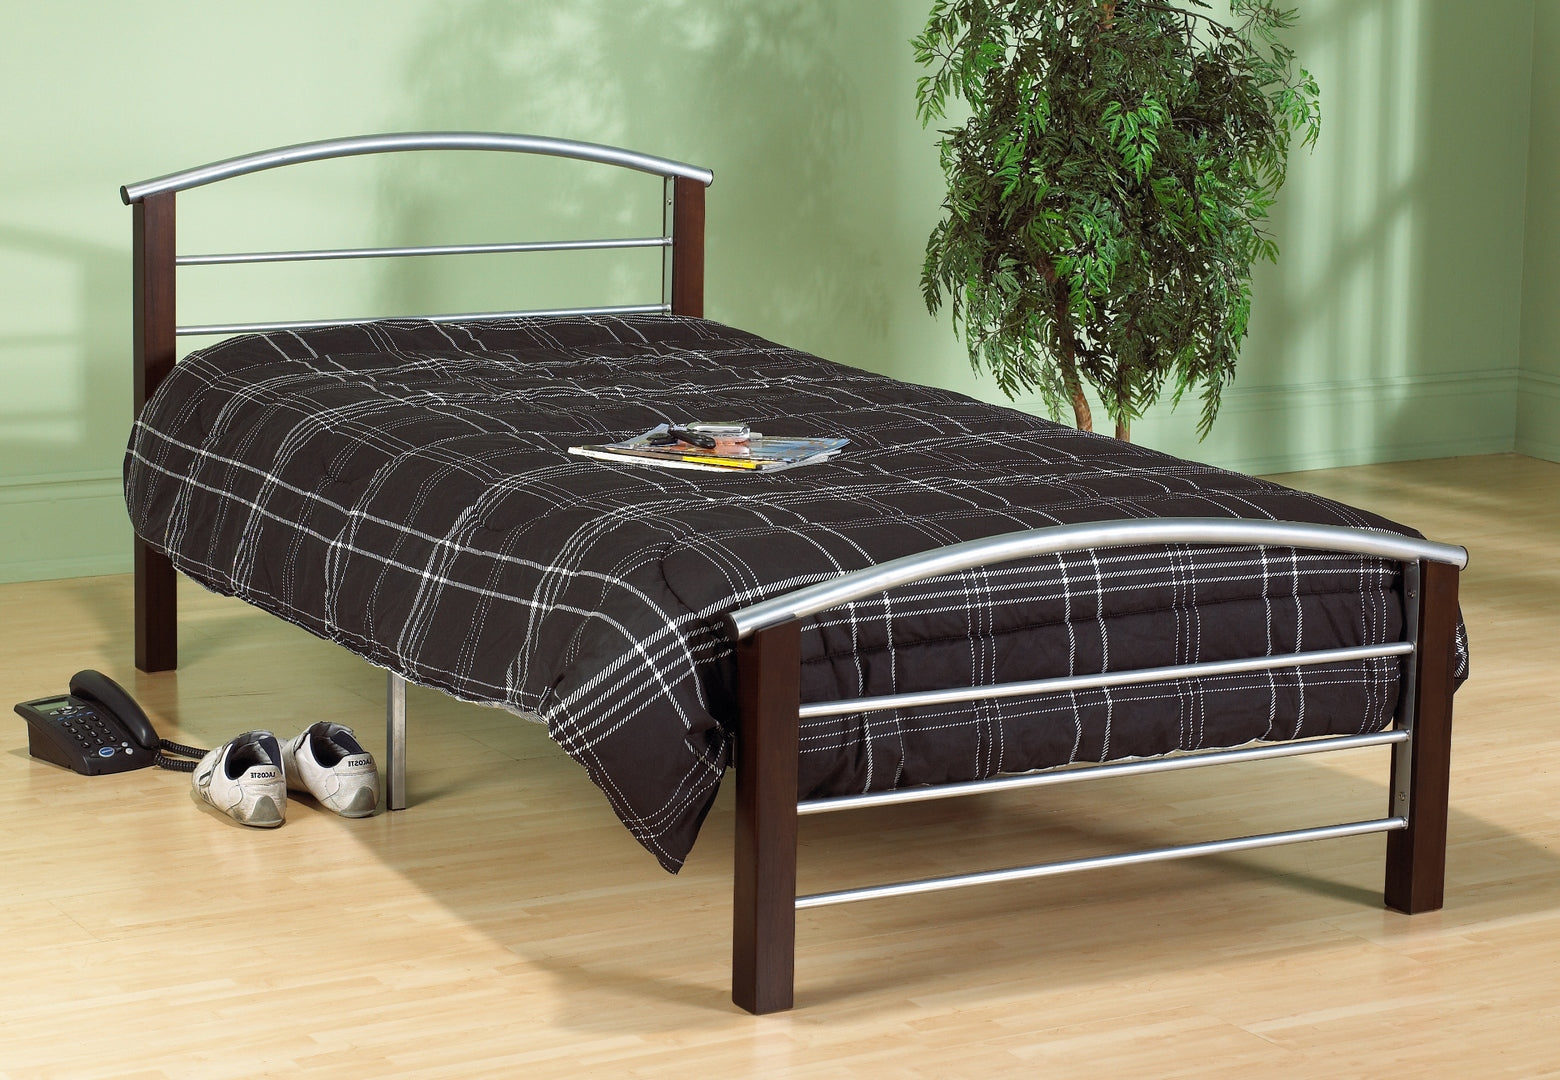 127 Metal Bed - Silver Metal and Dark Cherry Post